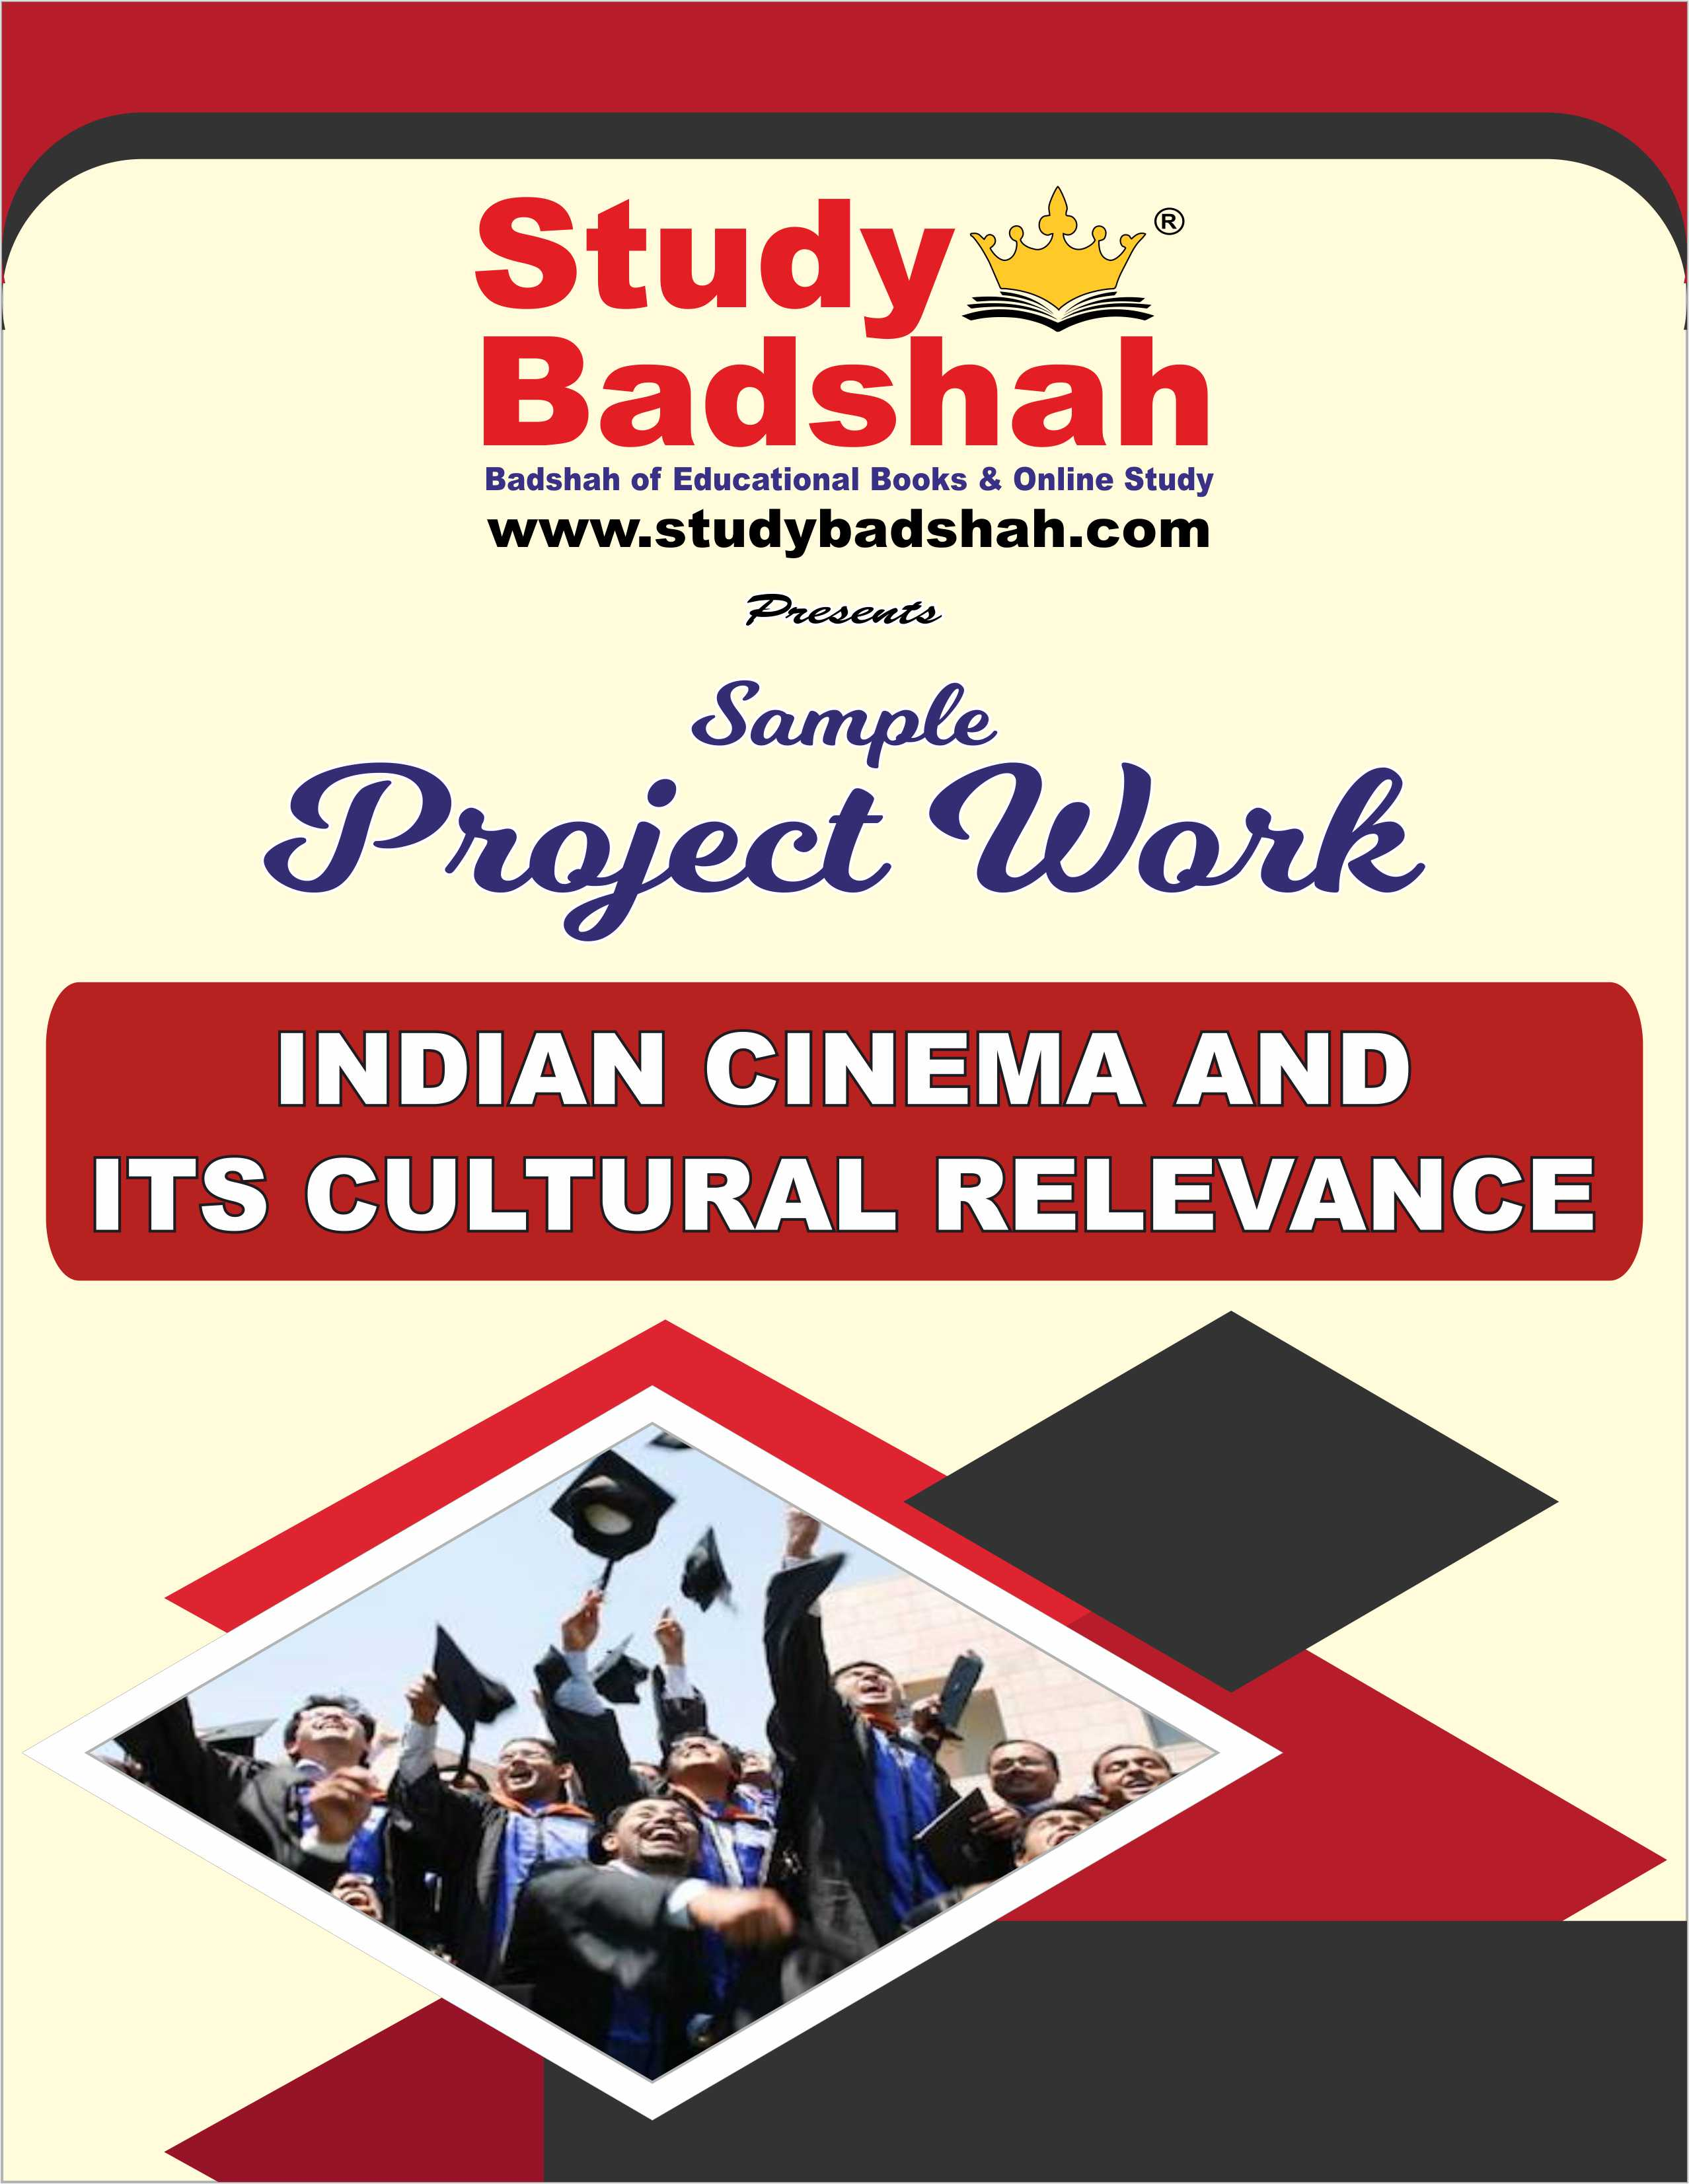 INDIAN CINEMA AND ITS CULTURAL RELEVANCE